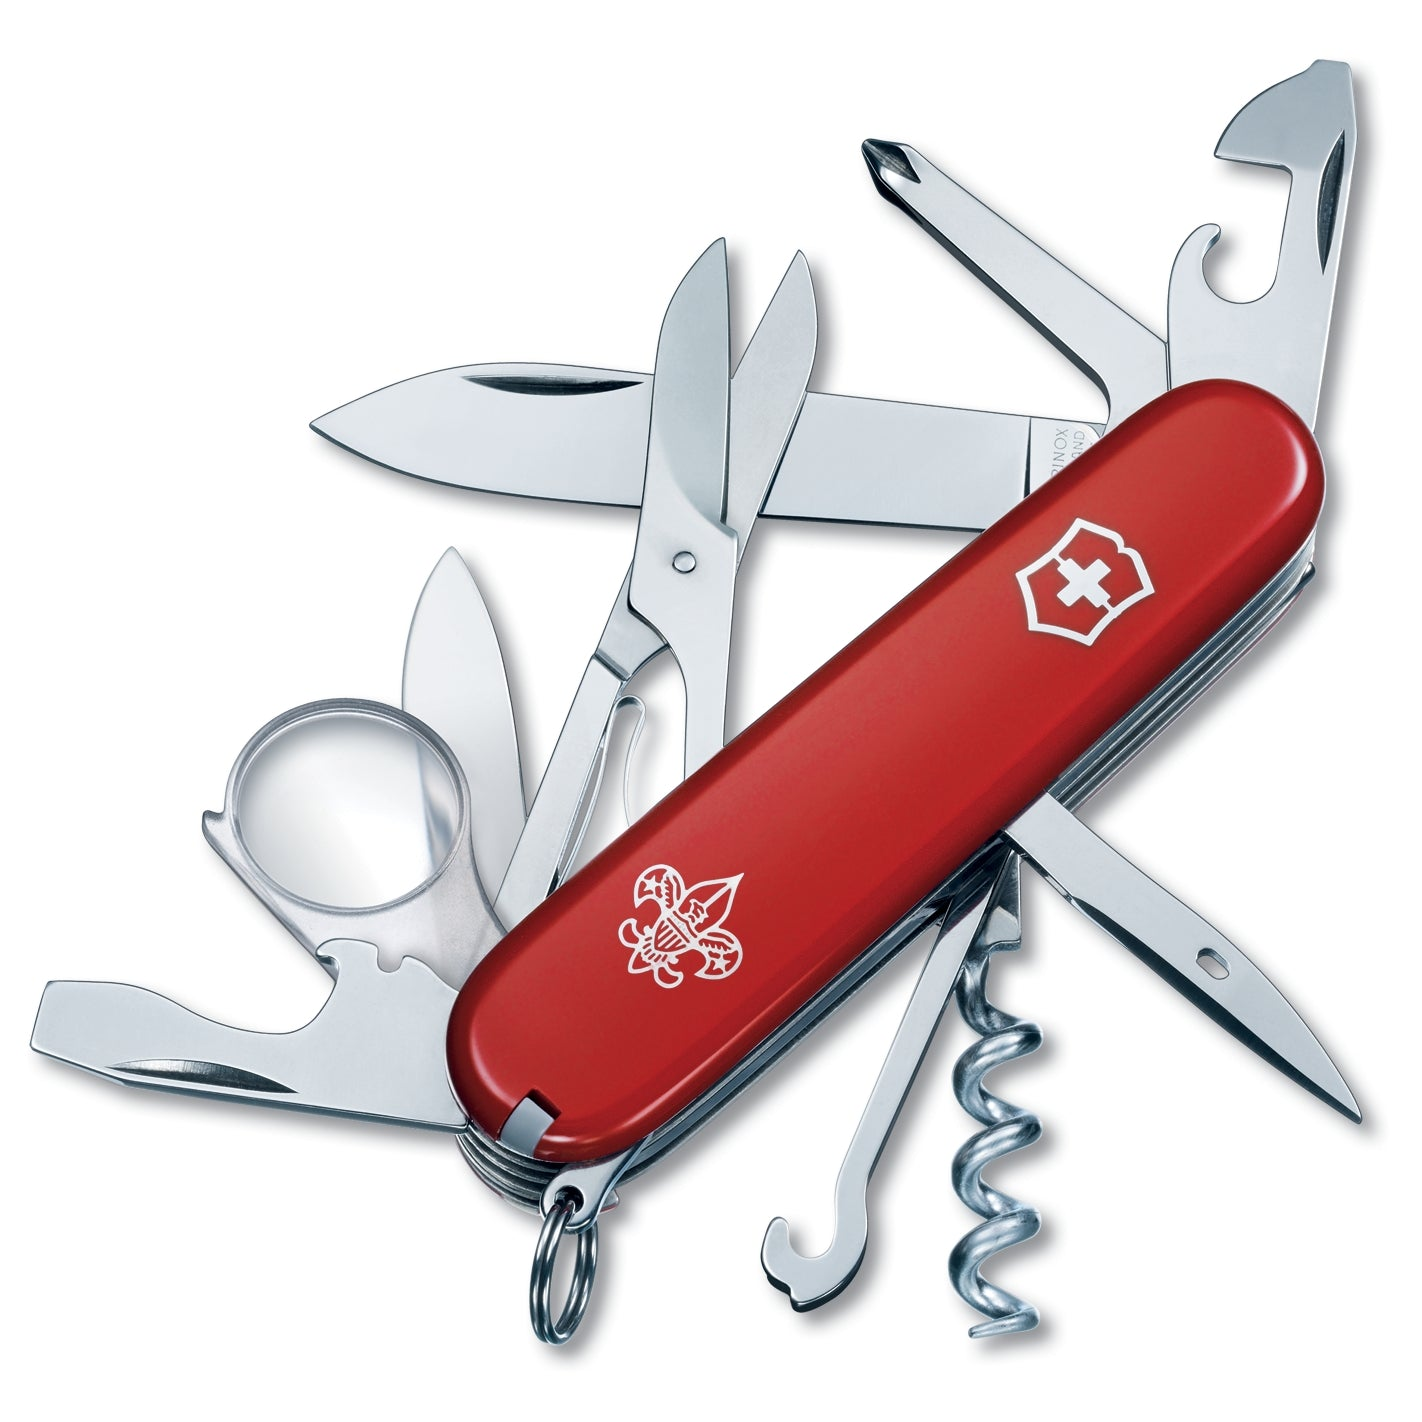 Boy Scout Explorer Swiss Army Knife